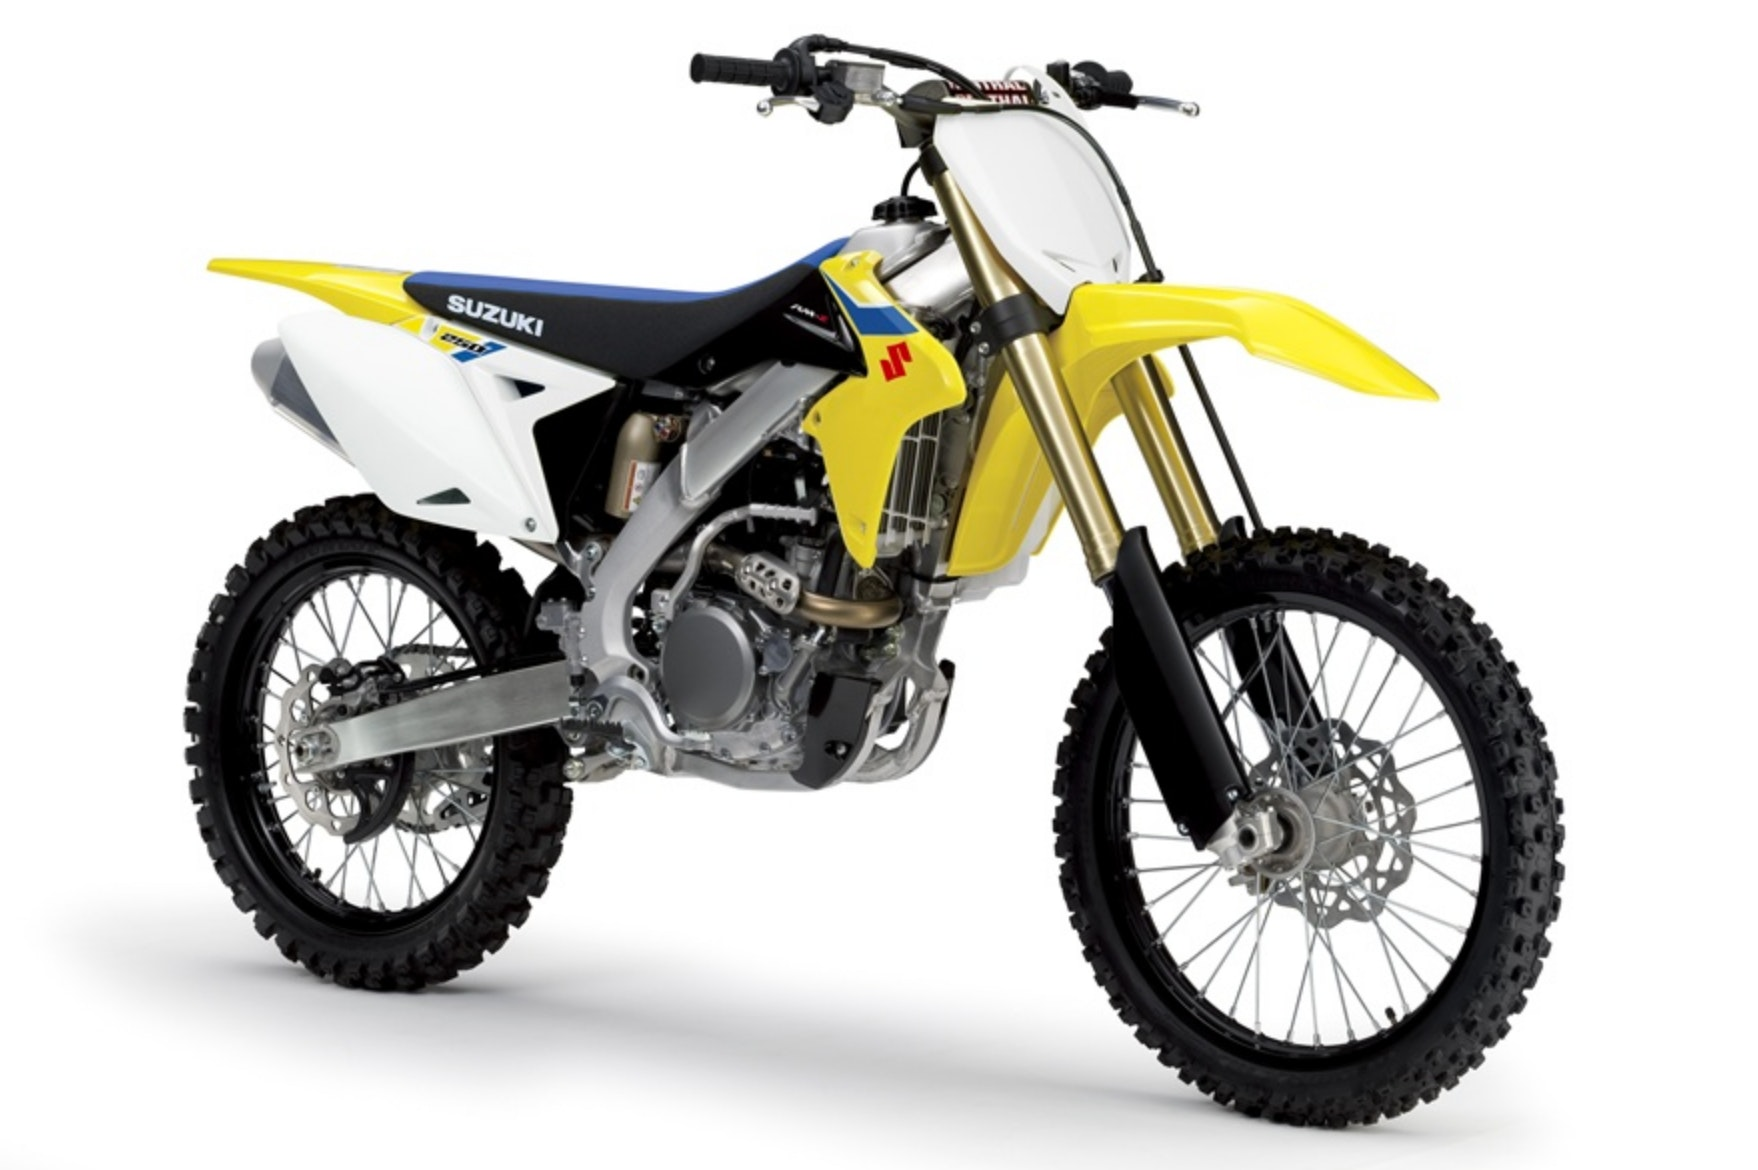 2018 suzuki rm. fine suzuki the 2018 suzuki rmz250 is an excellent choice for racers who want to  create a championshipcaliber bike engine and chassis work great stock accept  to suzuki rm 8